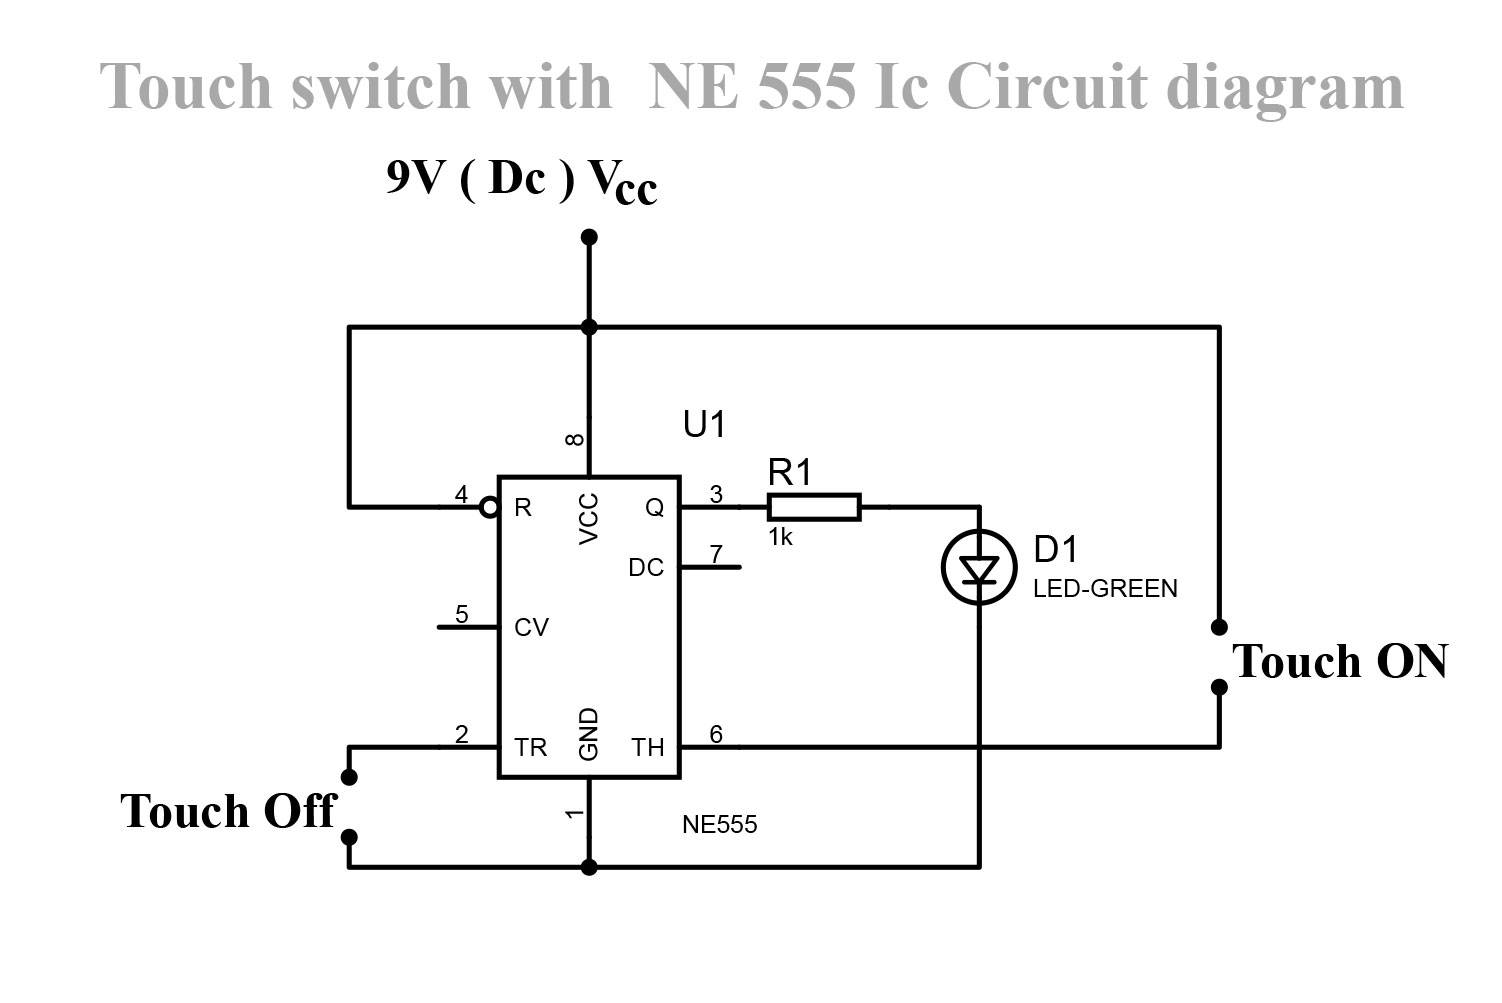 Ne555 On Off Touch Switch Circuit Earth Bondhon Dual Led Chaser Arduino Project For Beginners This Bit Is Predicated The Well Known Timer Ic 555 Ic1 That Drives A Relay Acts As Metal Surfaces Will Have